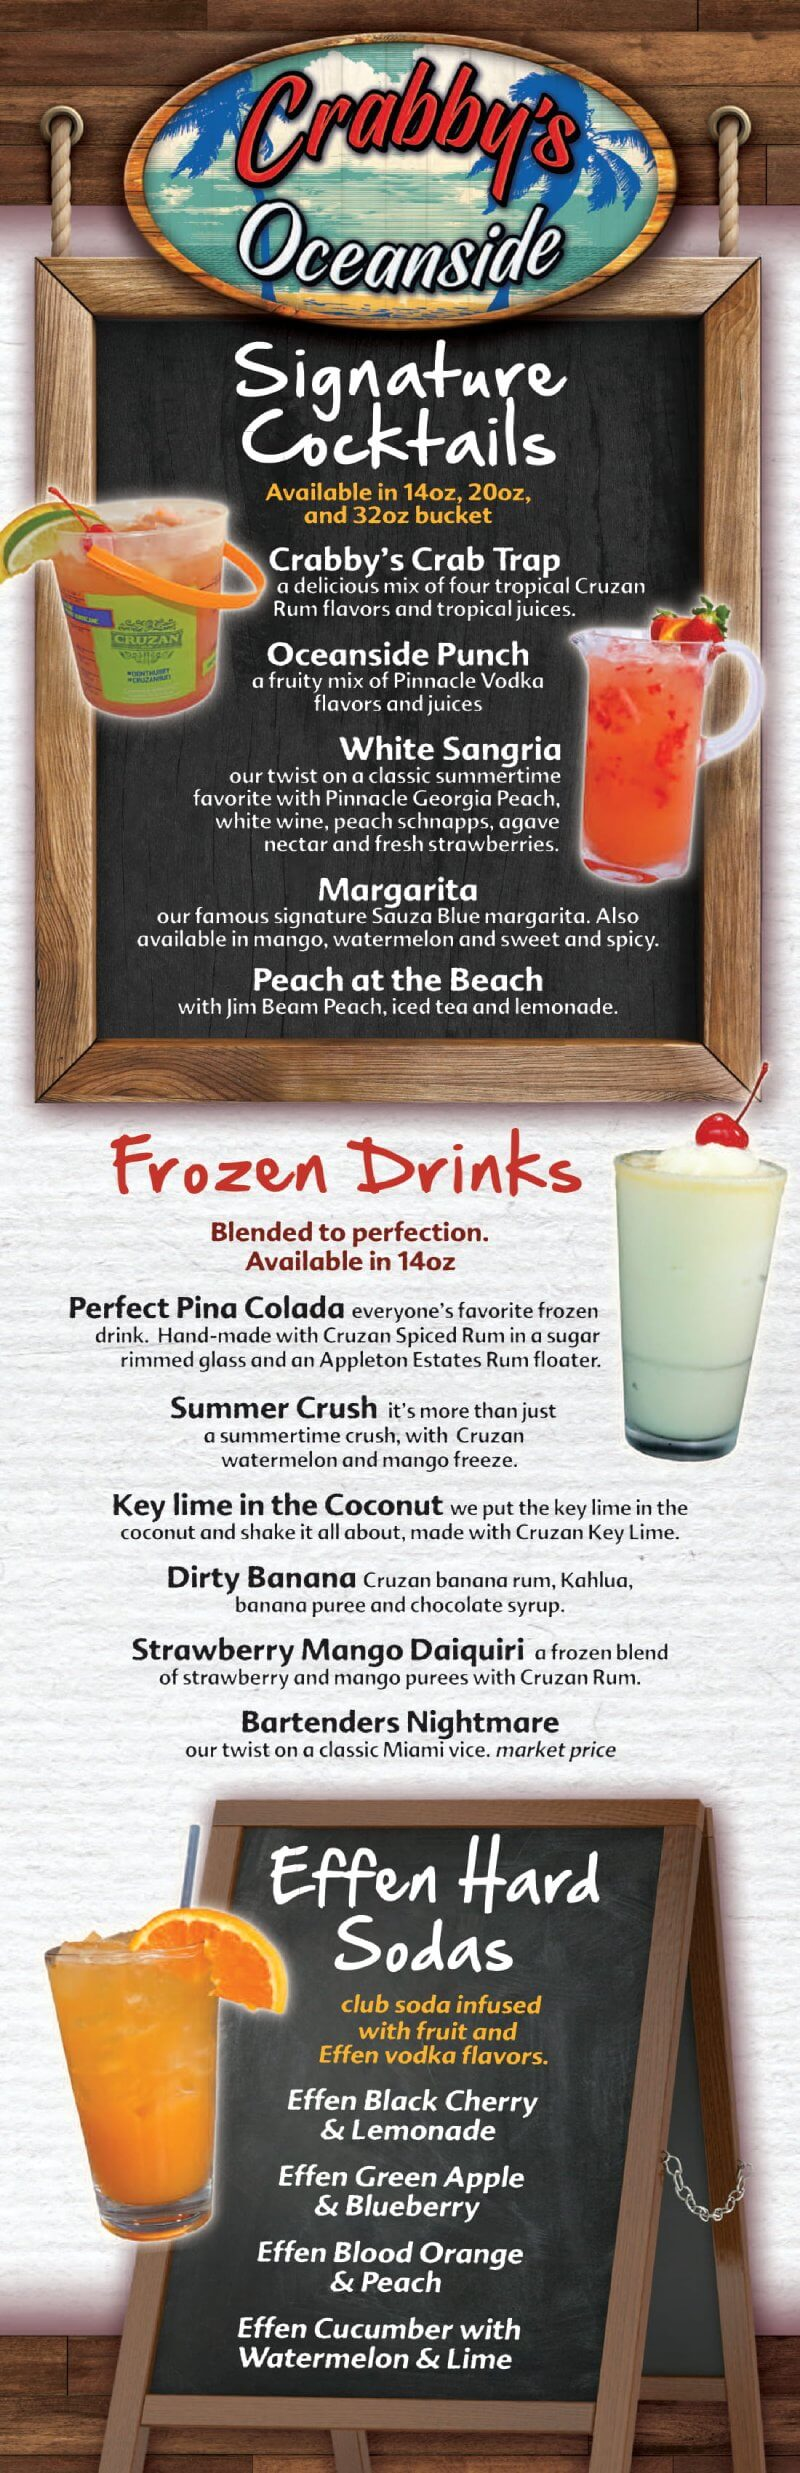 Crabby's Oceanside Drink-1 (1)